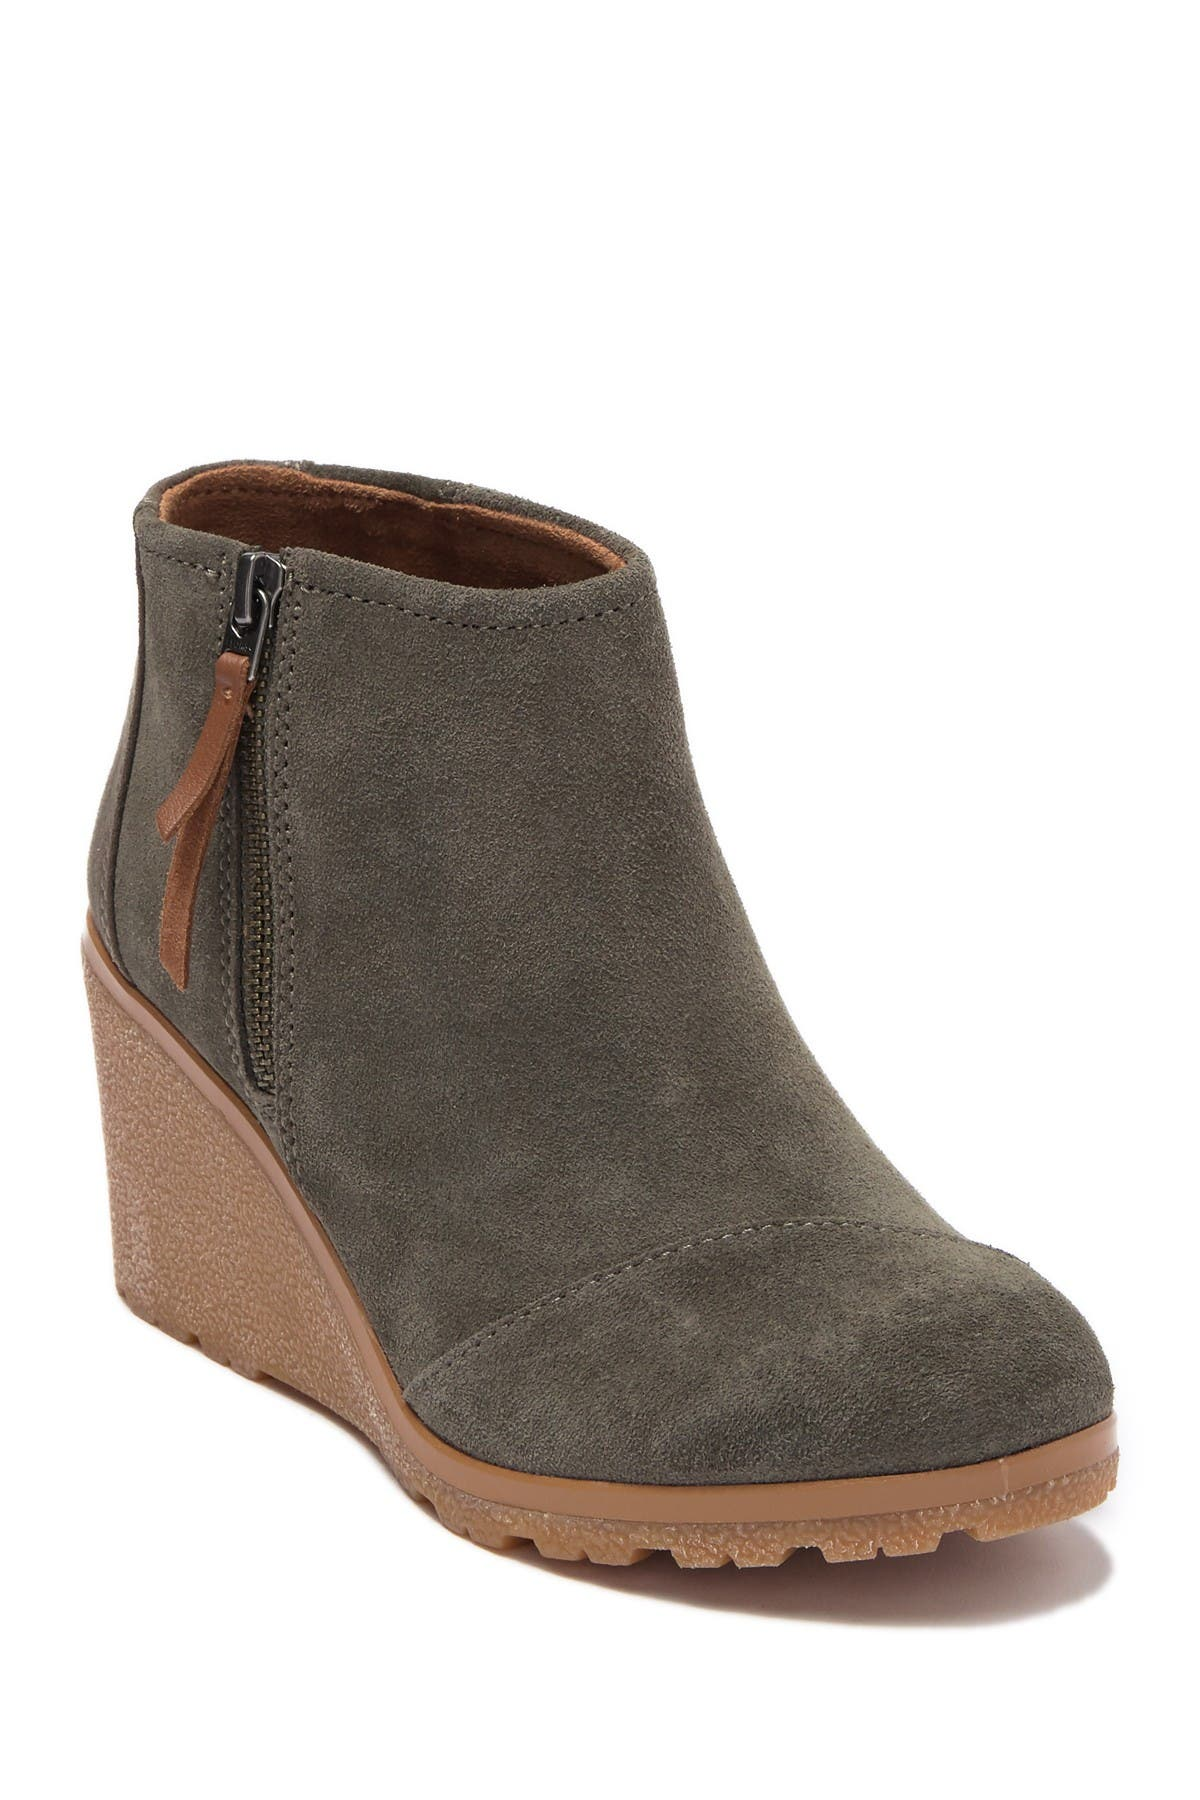 TOMS | Avery Suede Wedge Bootie